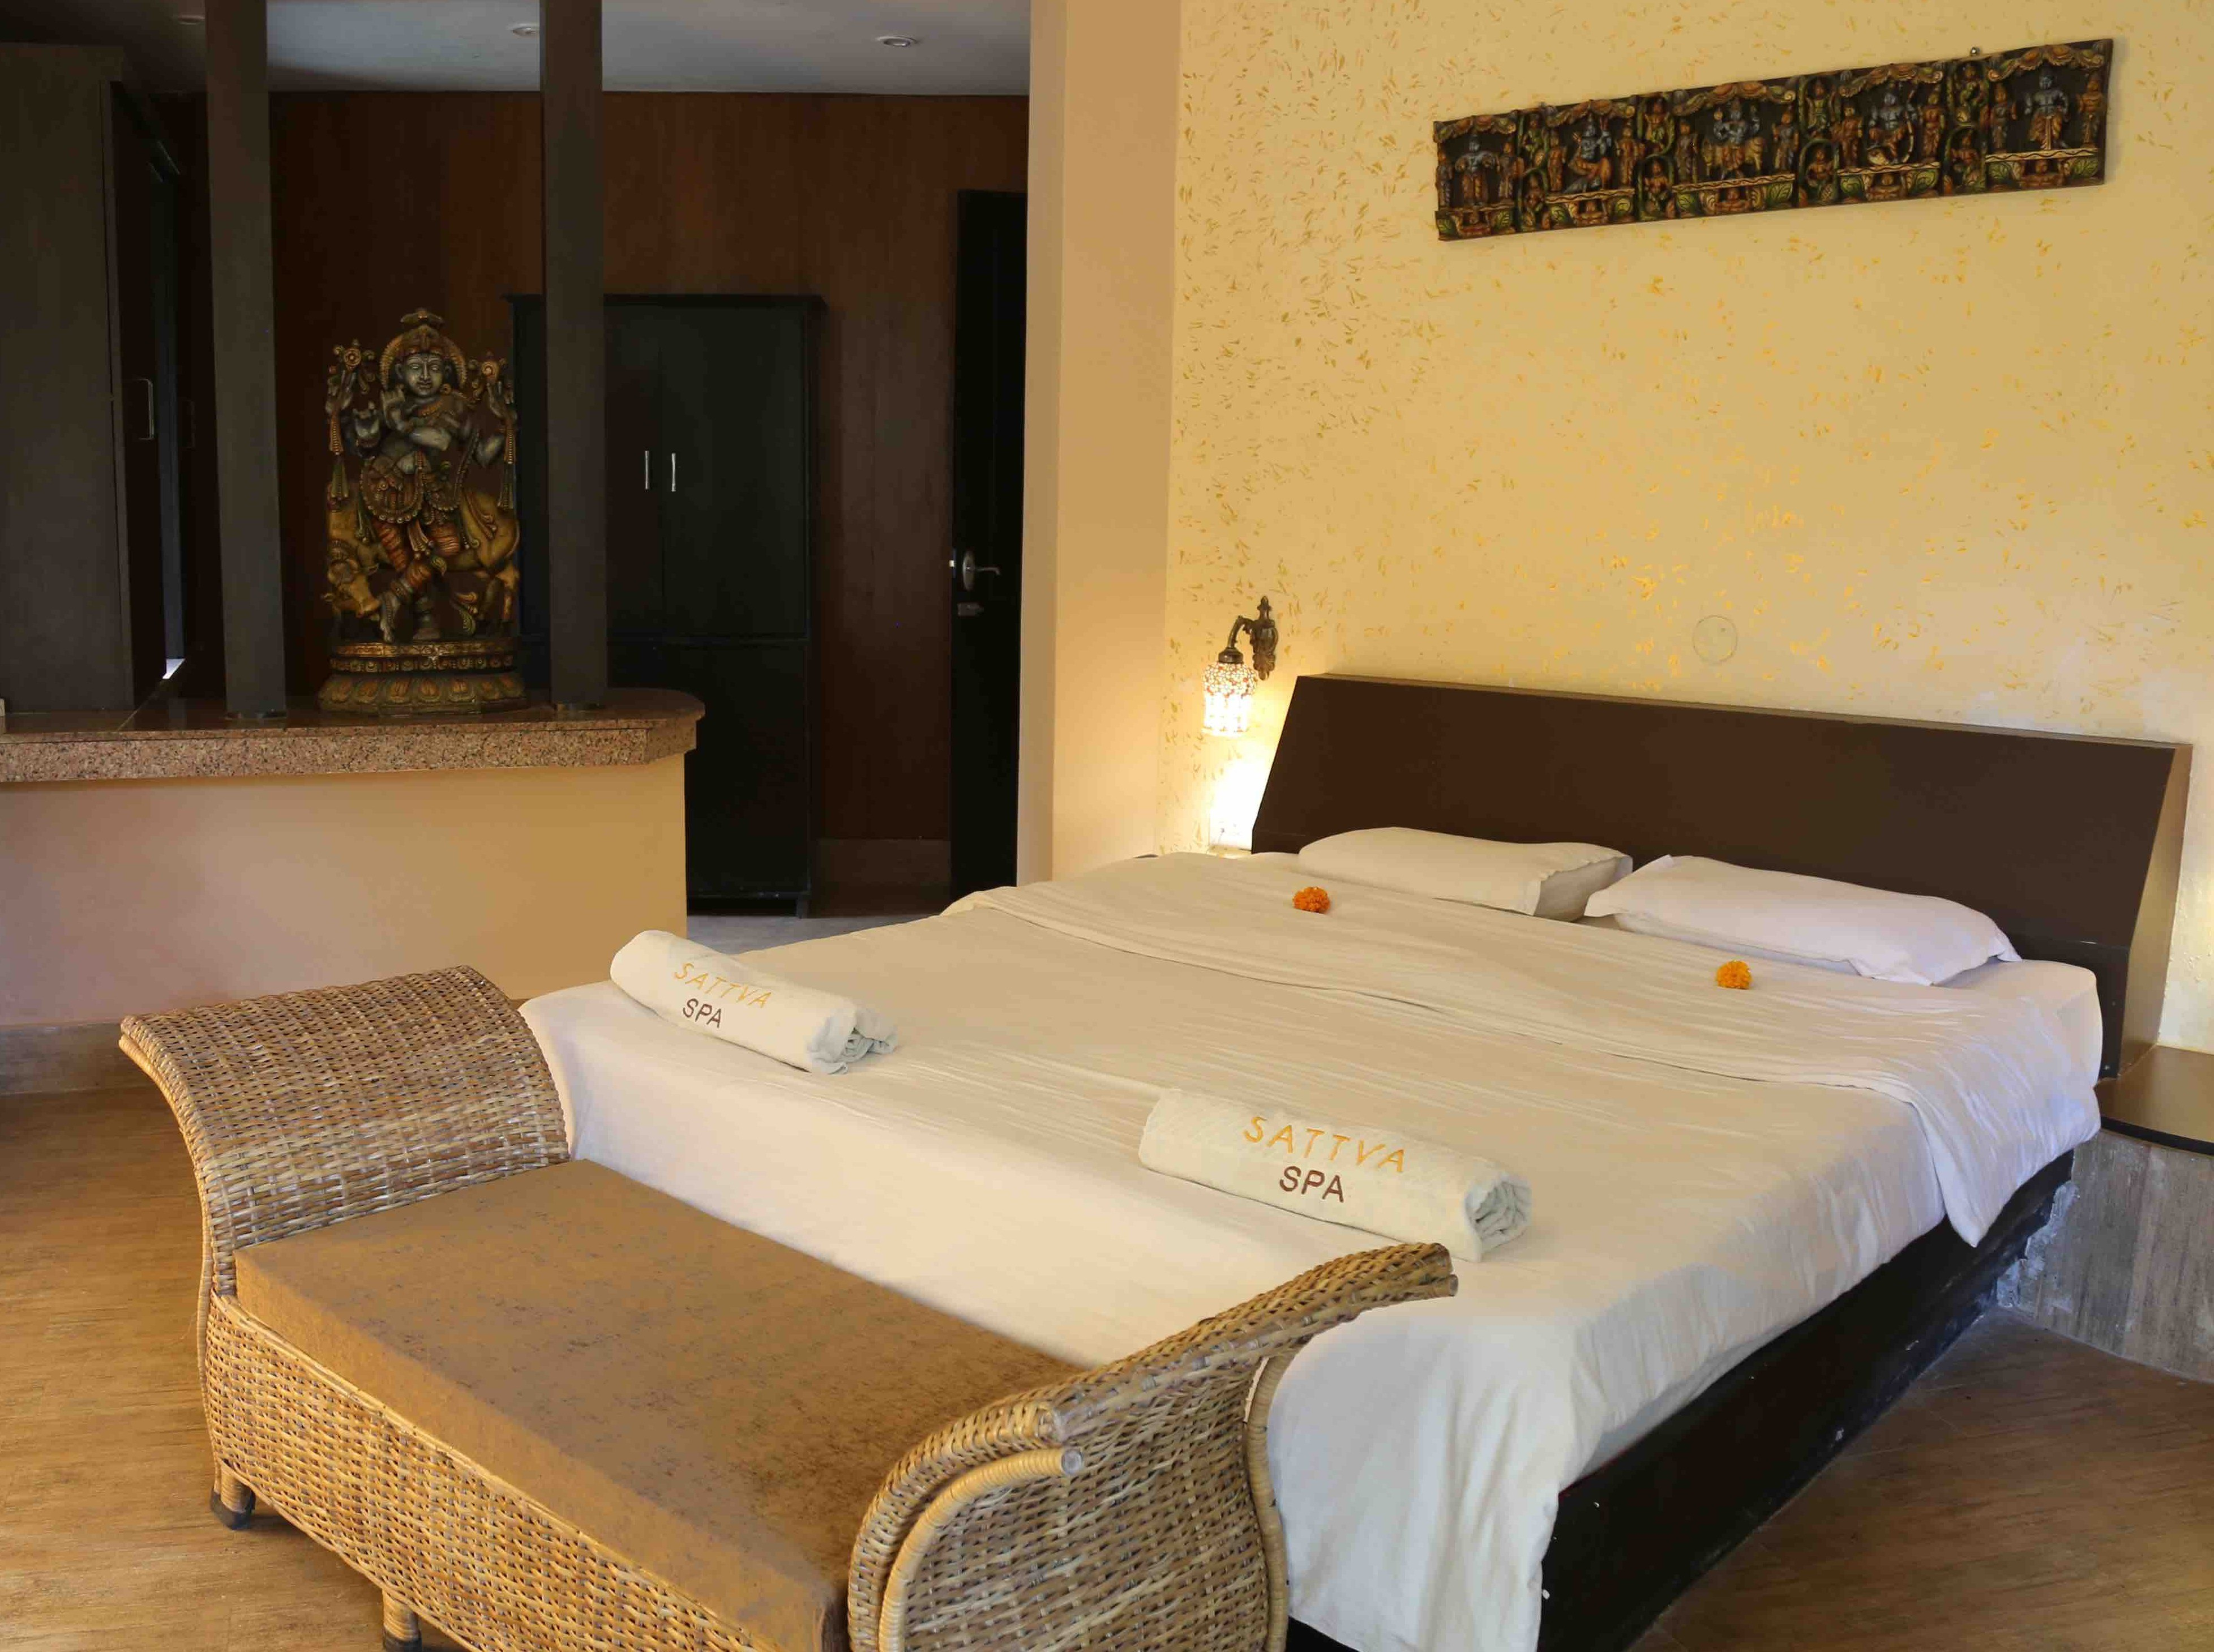 Deluxe Room at Sattva Yoga Academy